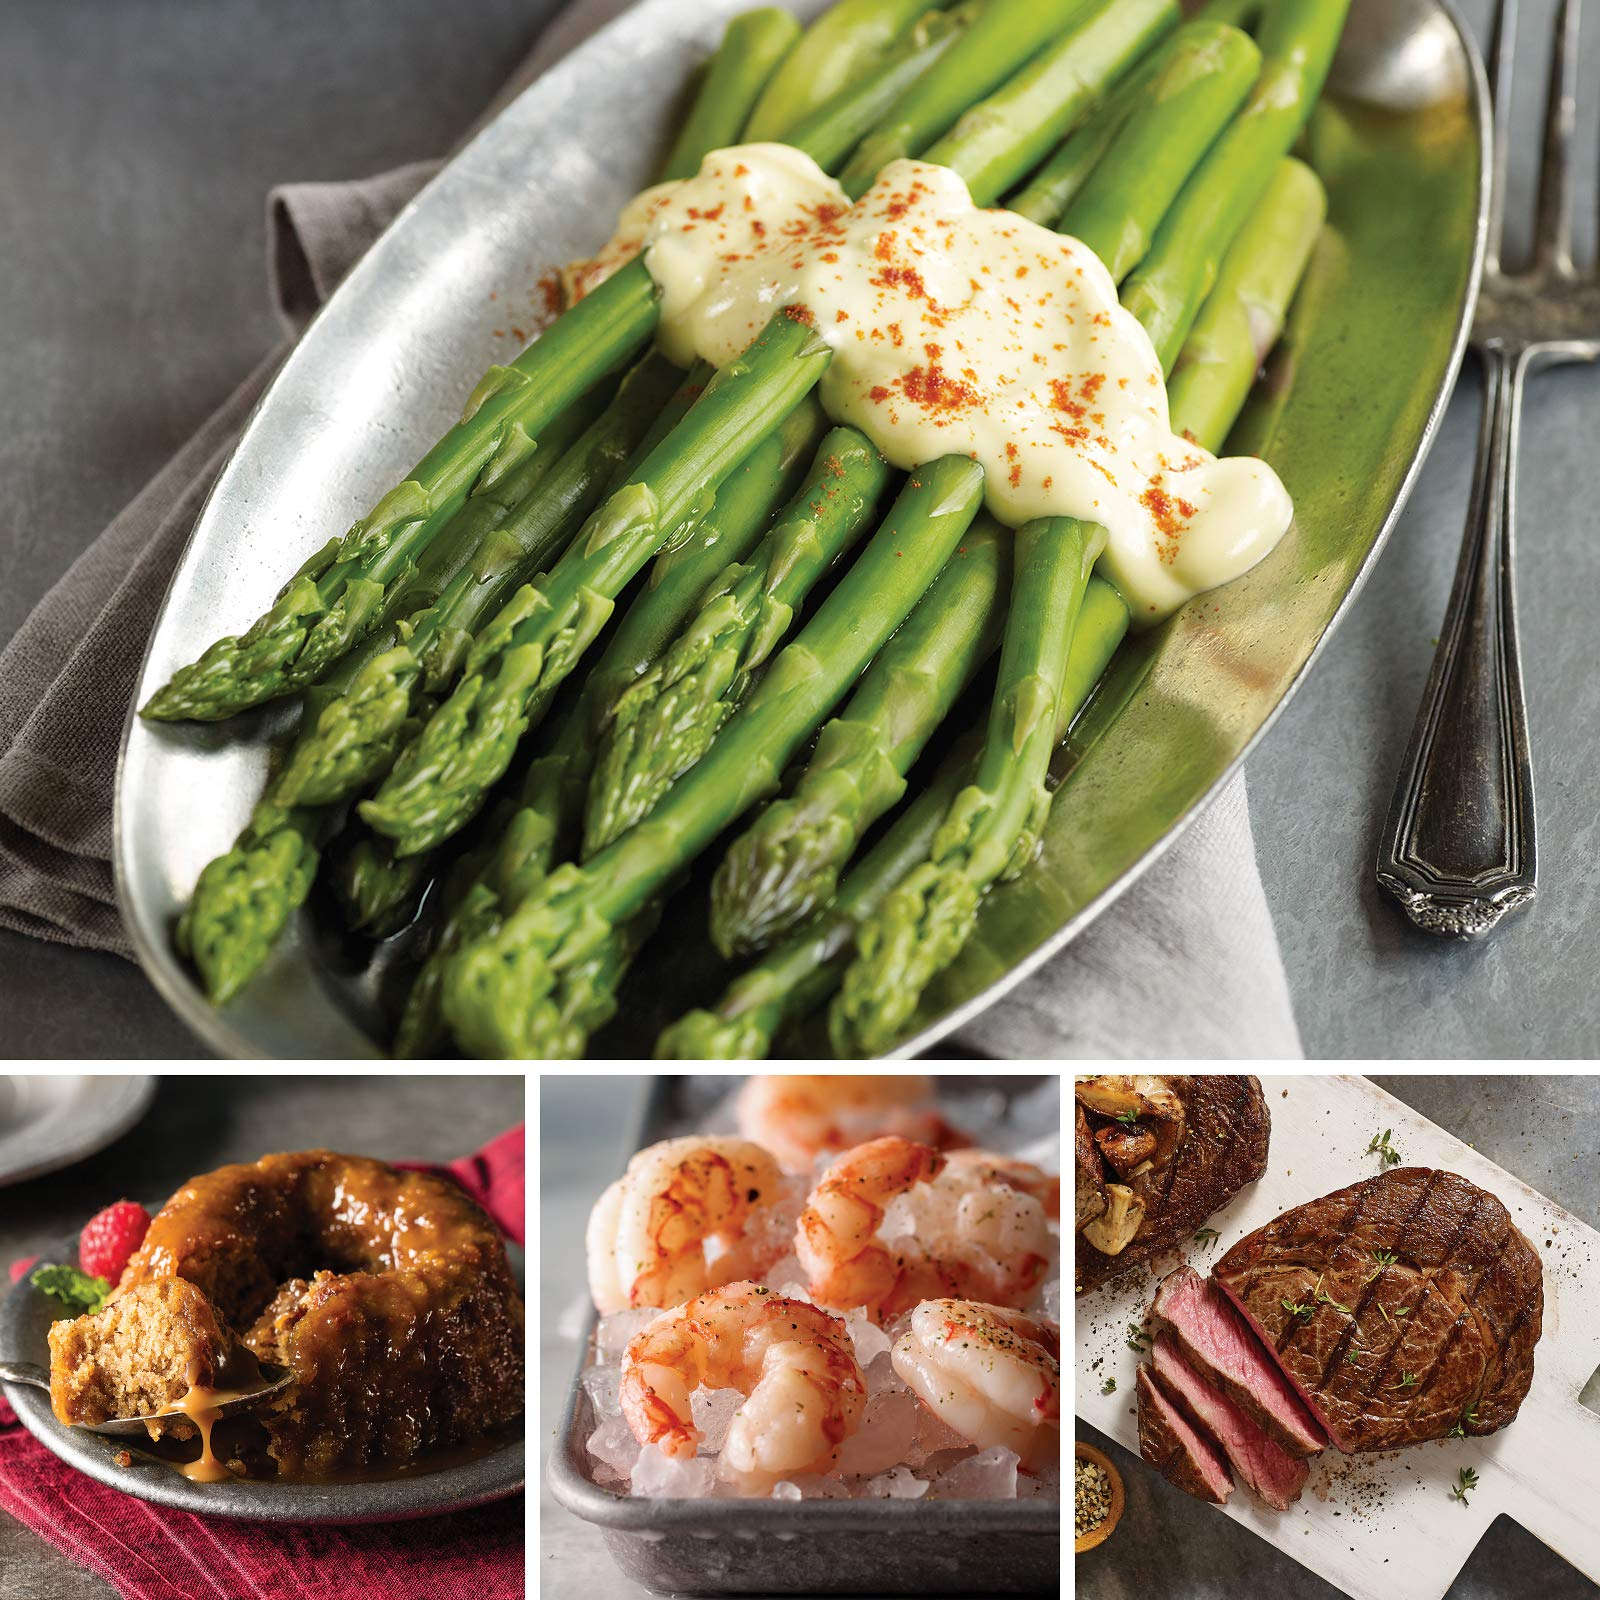 Omaha Steaks Ribeye and Red Shrimp Holiday Surf and Turf Combo (9-Piece with Ribeyes, Wild Argentinian Red Shrimp, Asparagus Spears in Hollandaise Sauce, and Individual Sticky Toffee Pudding Cakes)